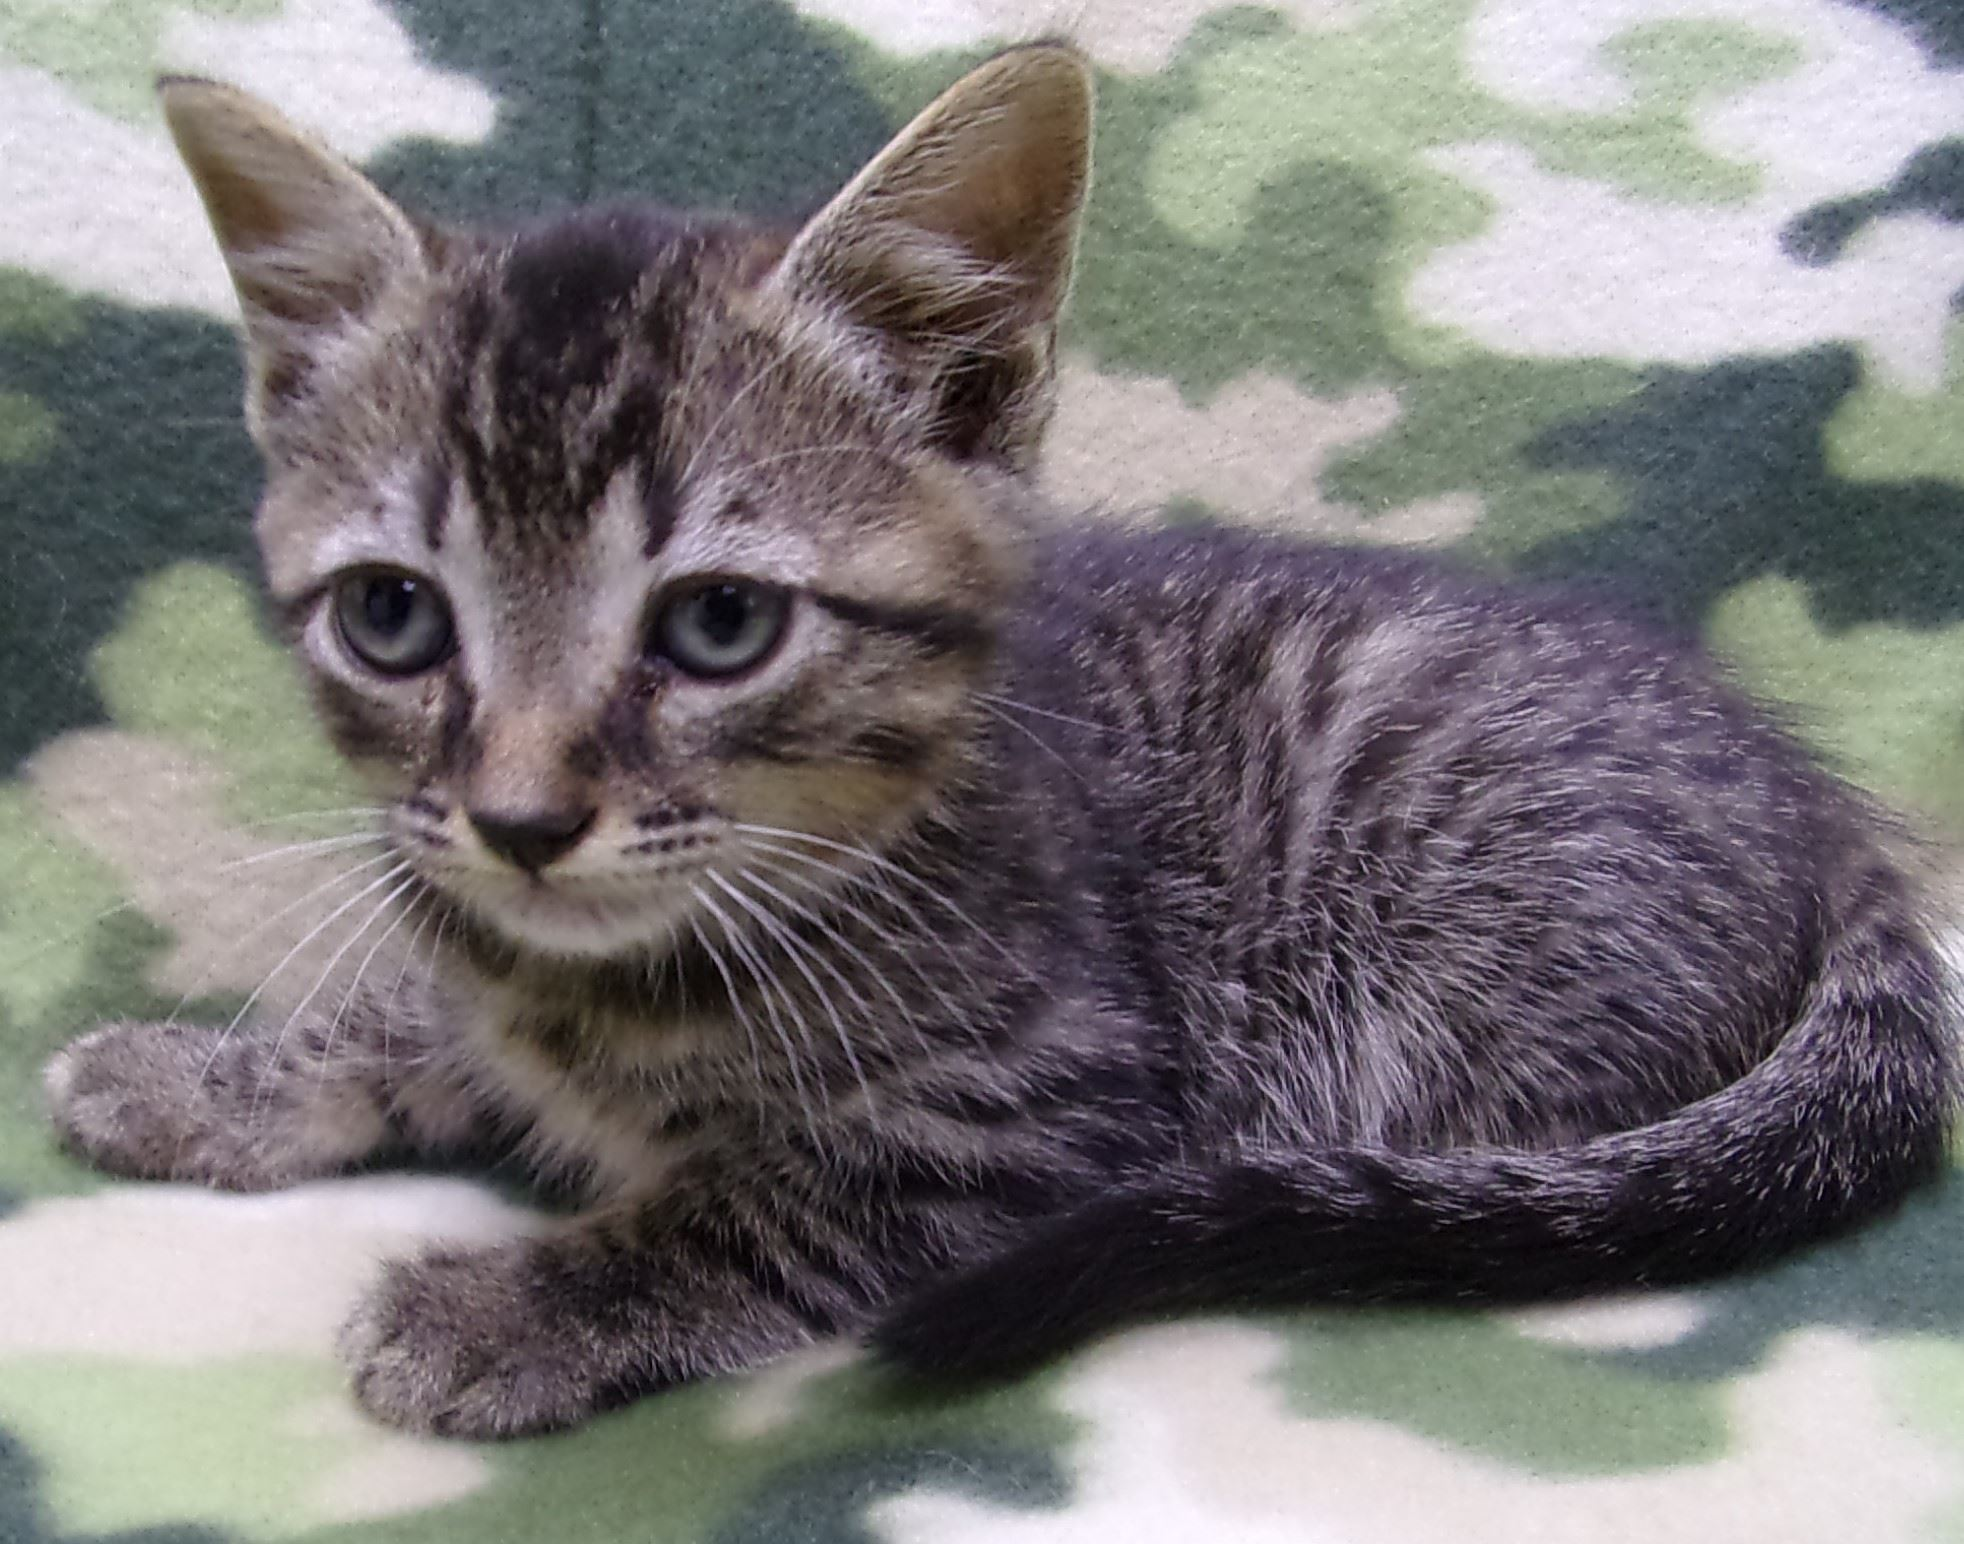 19-279 Axle grey striped male kitten